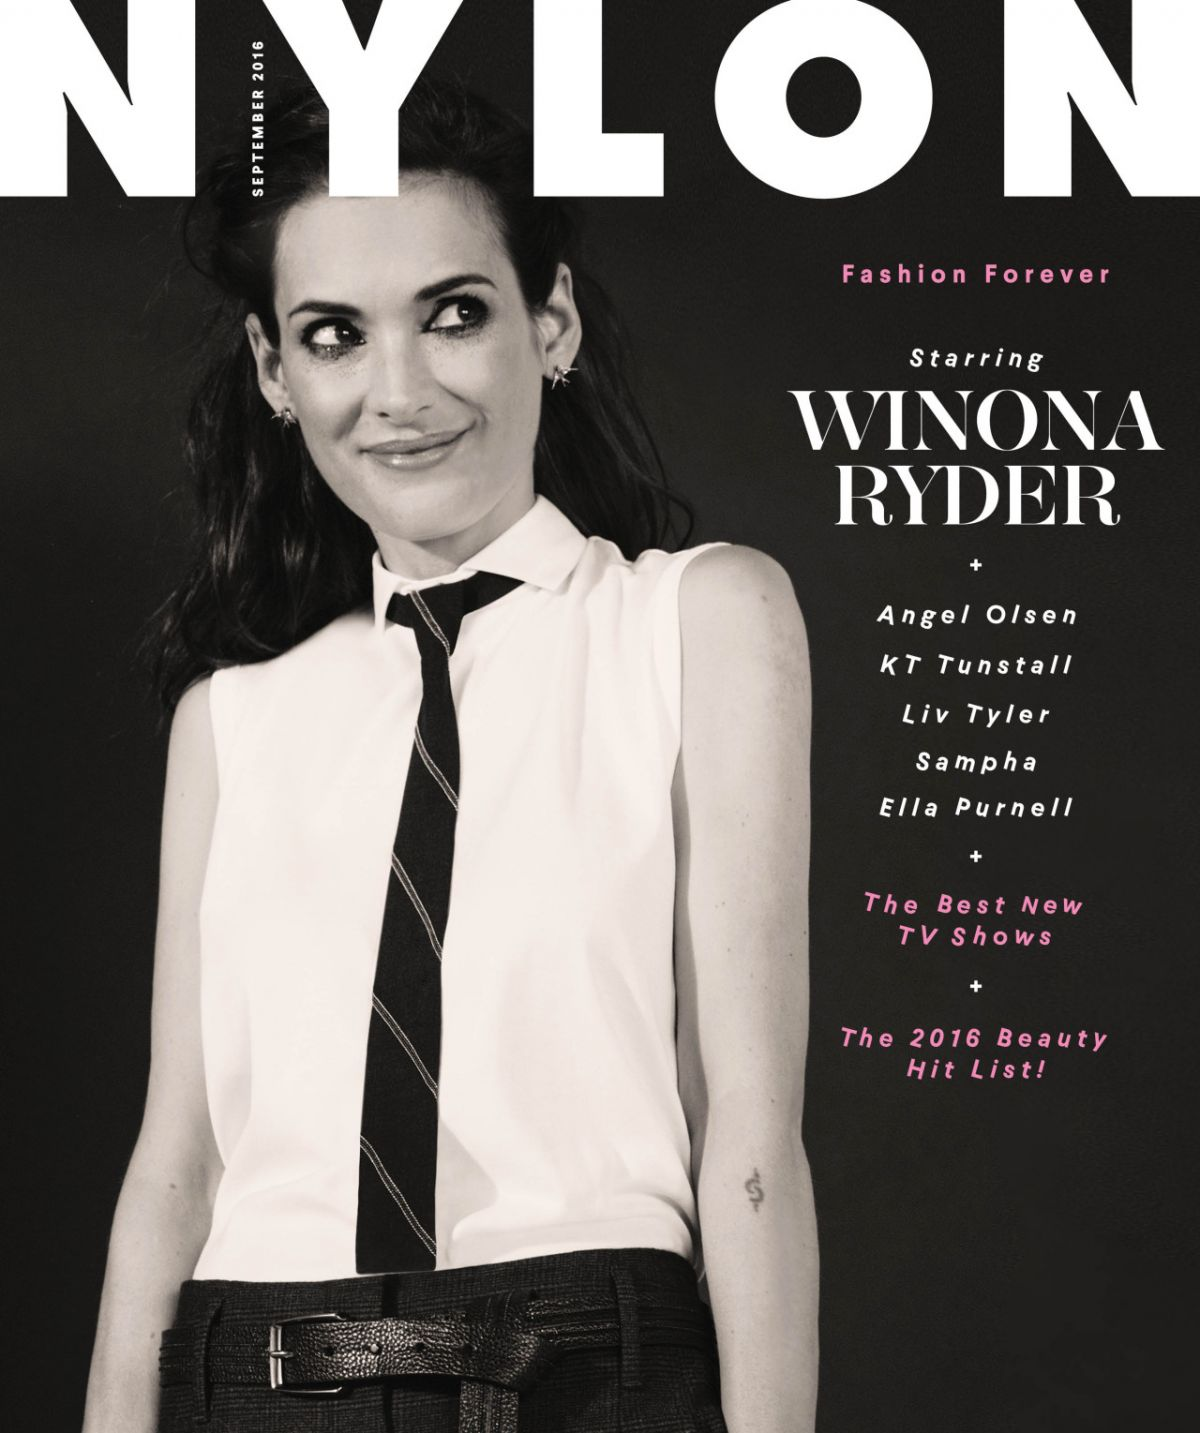 Winona Ryder Photo Shoot for Nylon Magazine 2016 September Issue